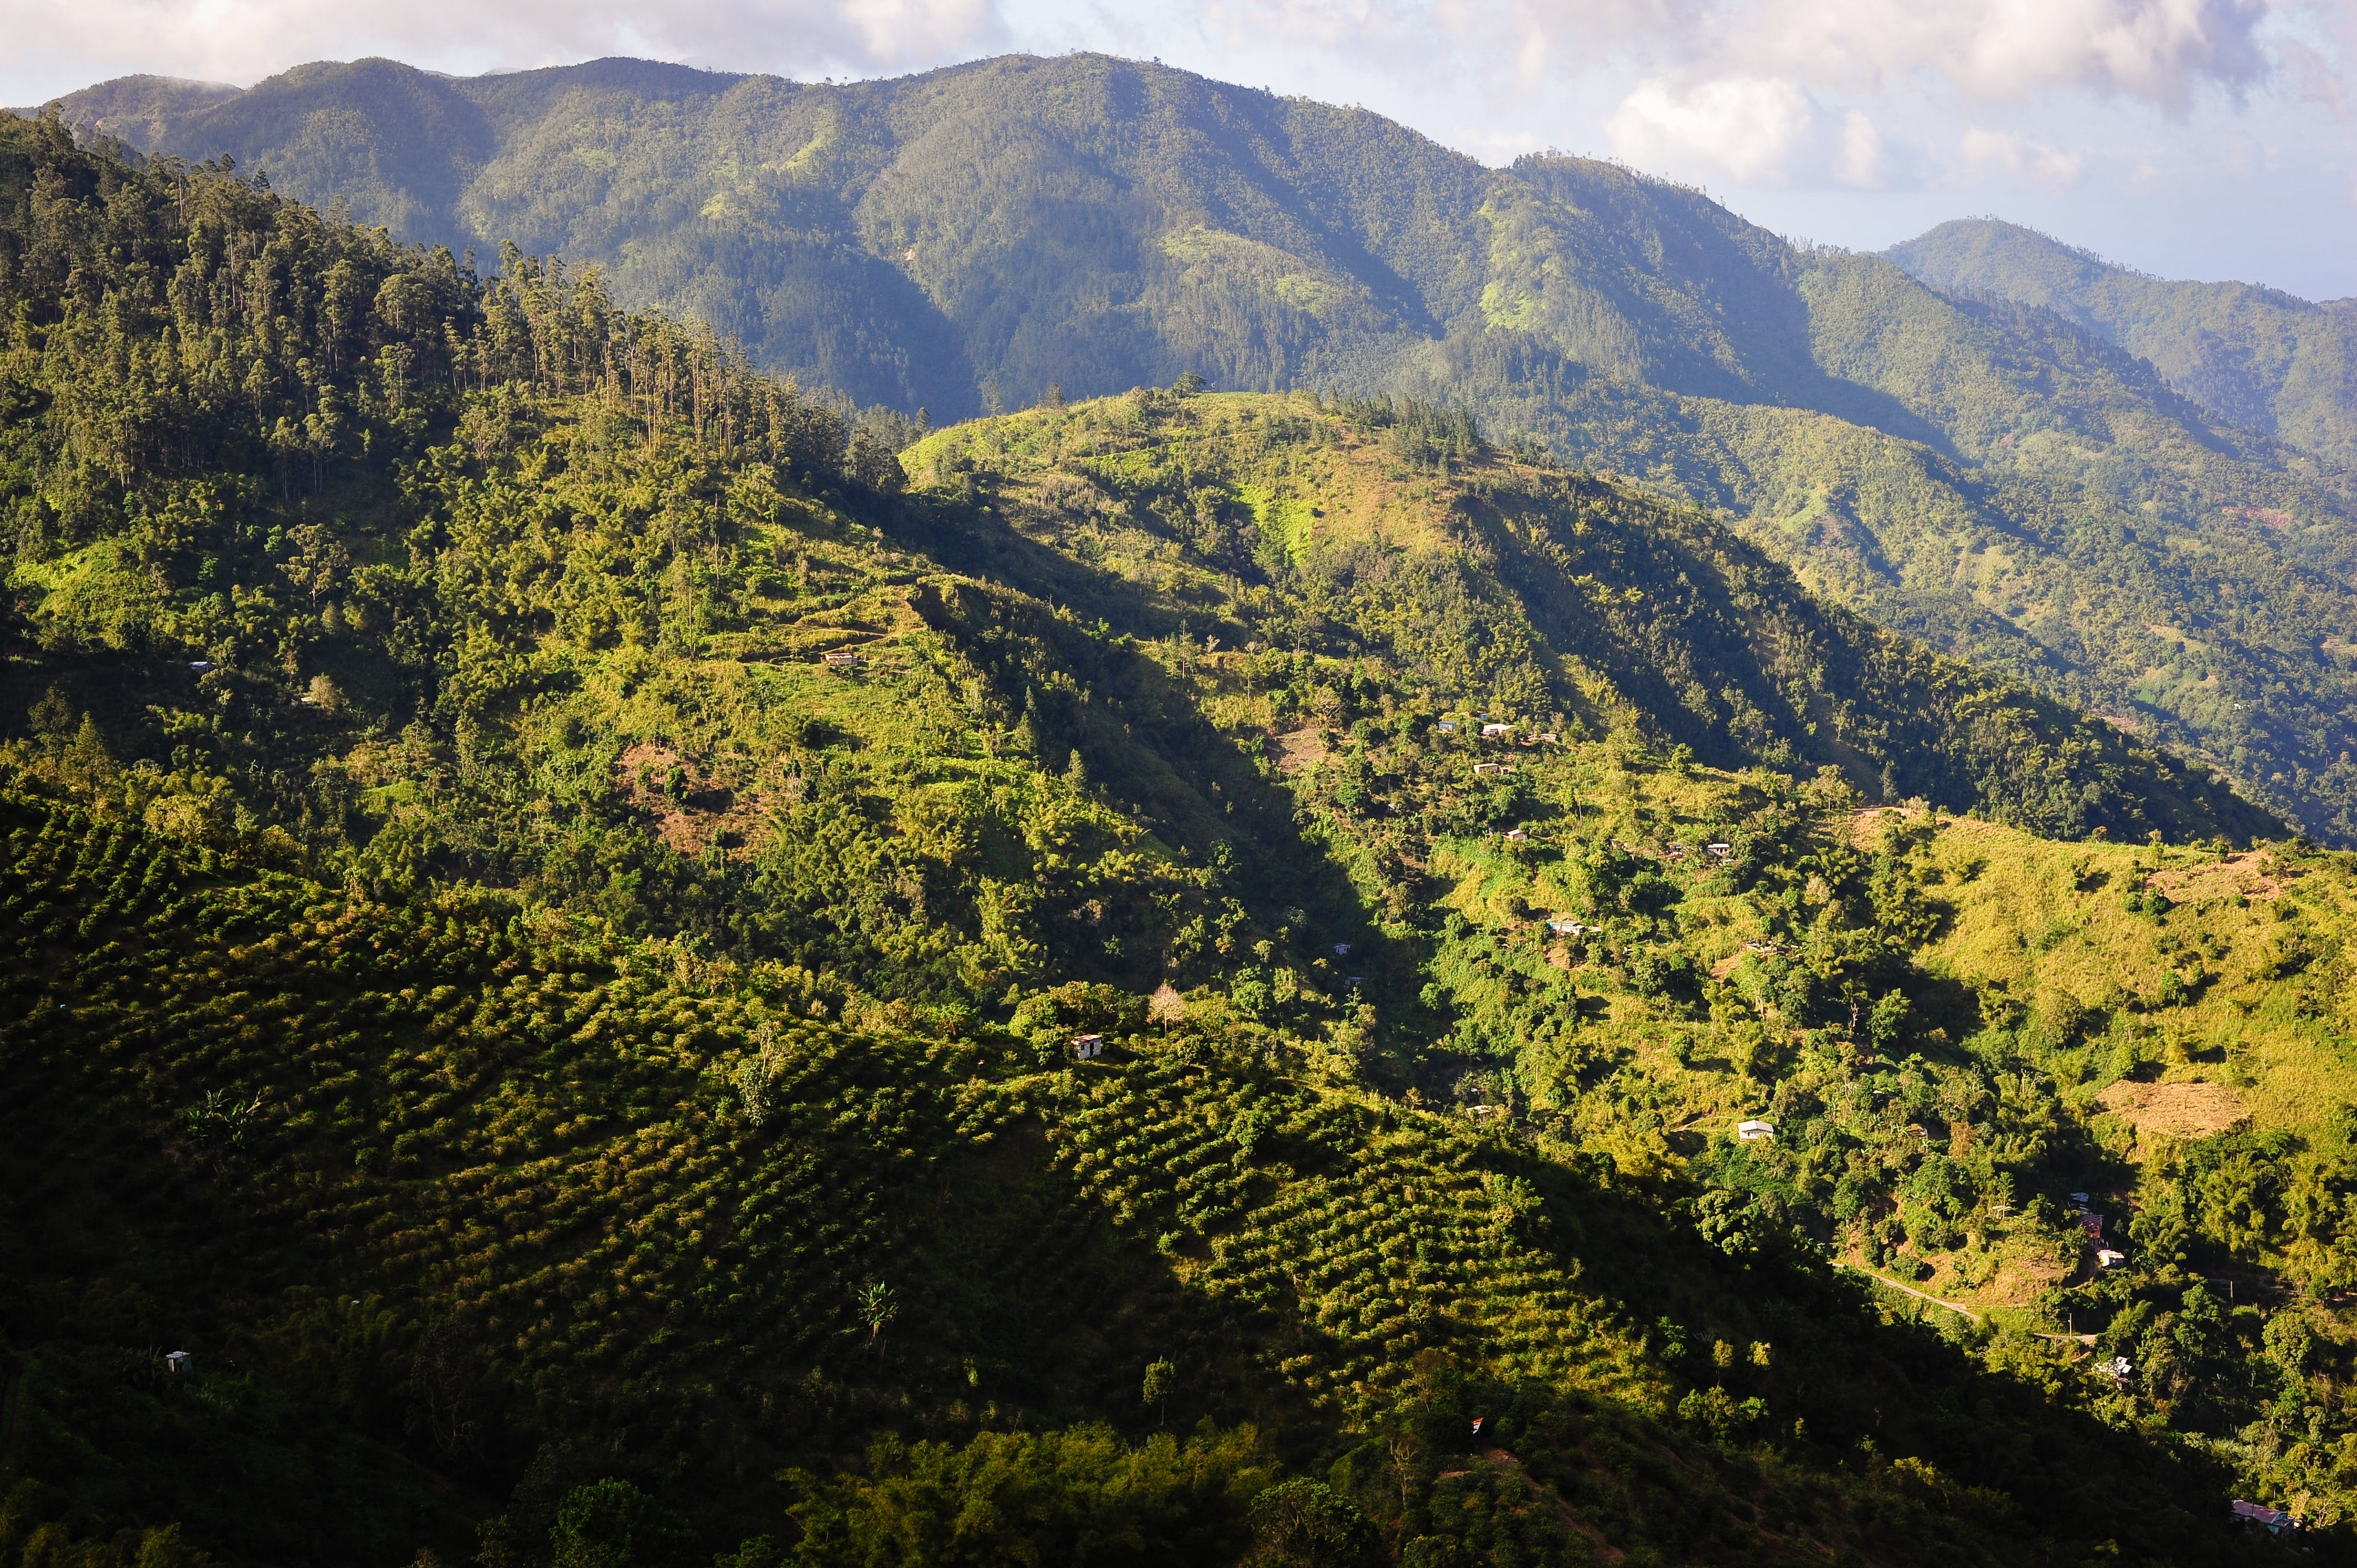 A view of the rugged Blue Mountains of Jamaica at sunset. Scientists are on a Question to Find and Preserve Jamaica's Unique Strains (Photo by Marc Guitard)